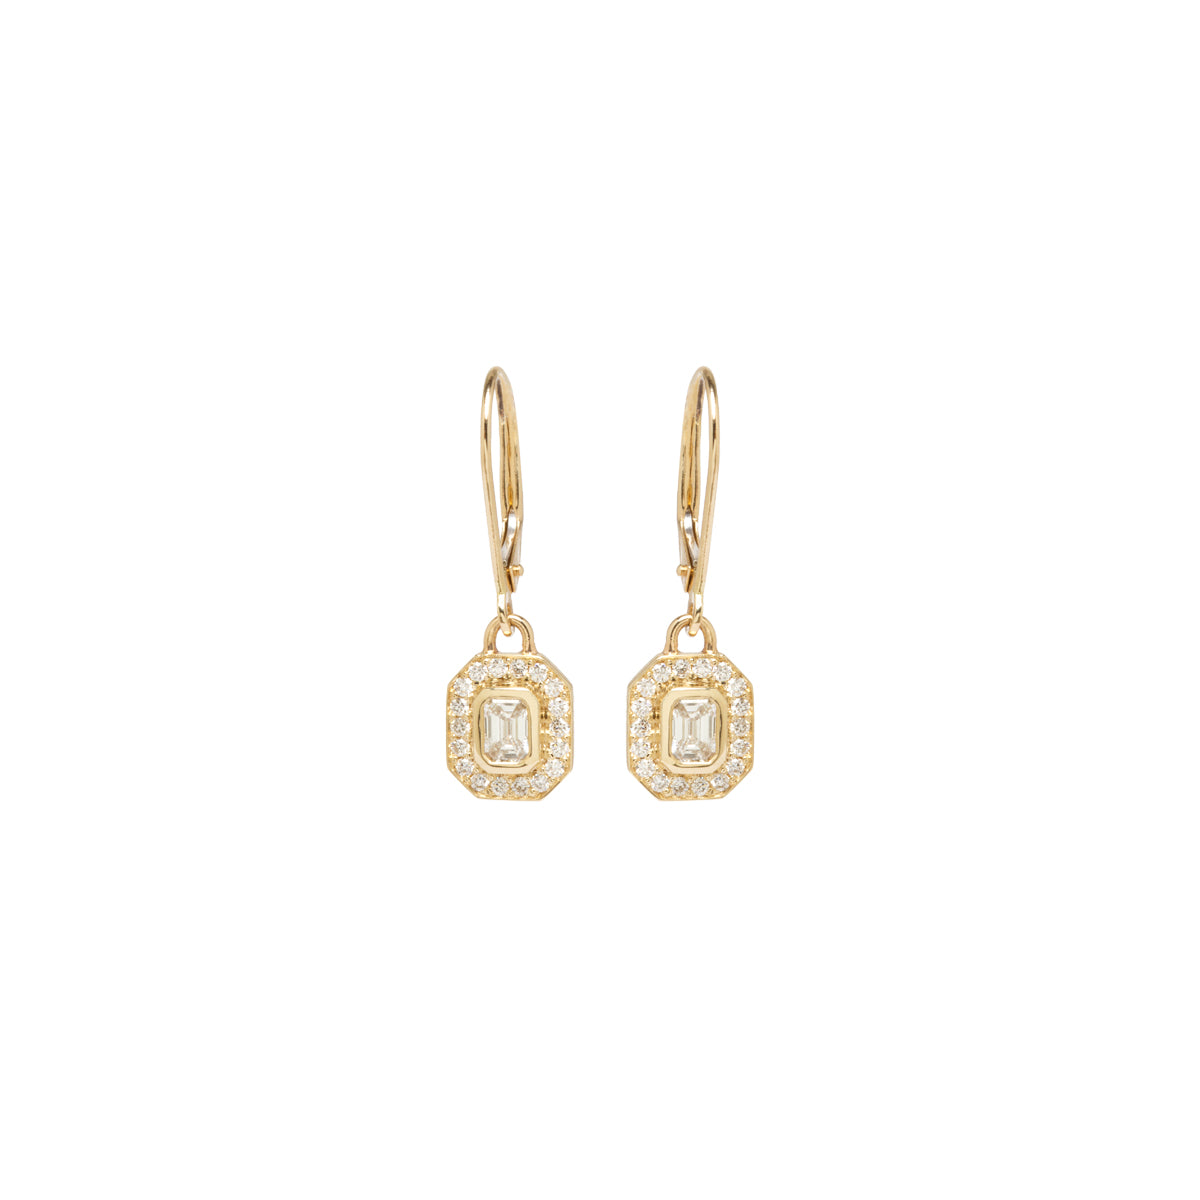 14k emerald cut diamond drop earrings with pave halo